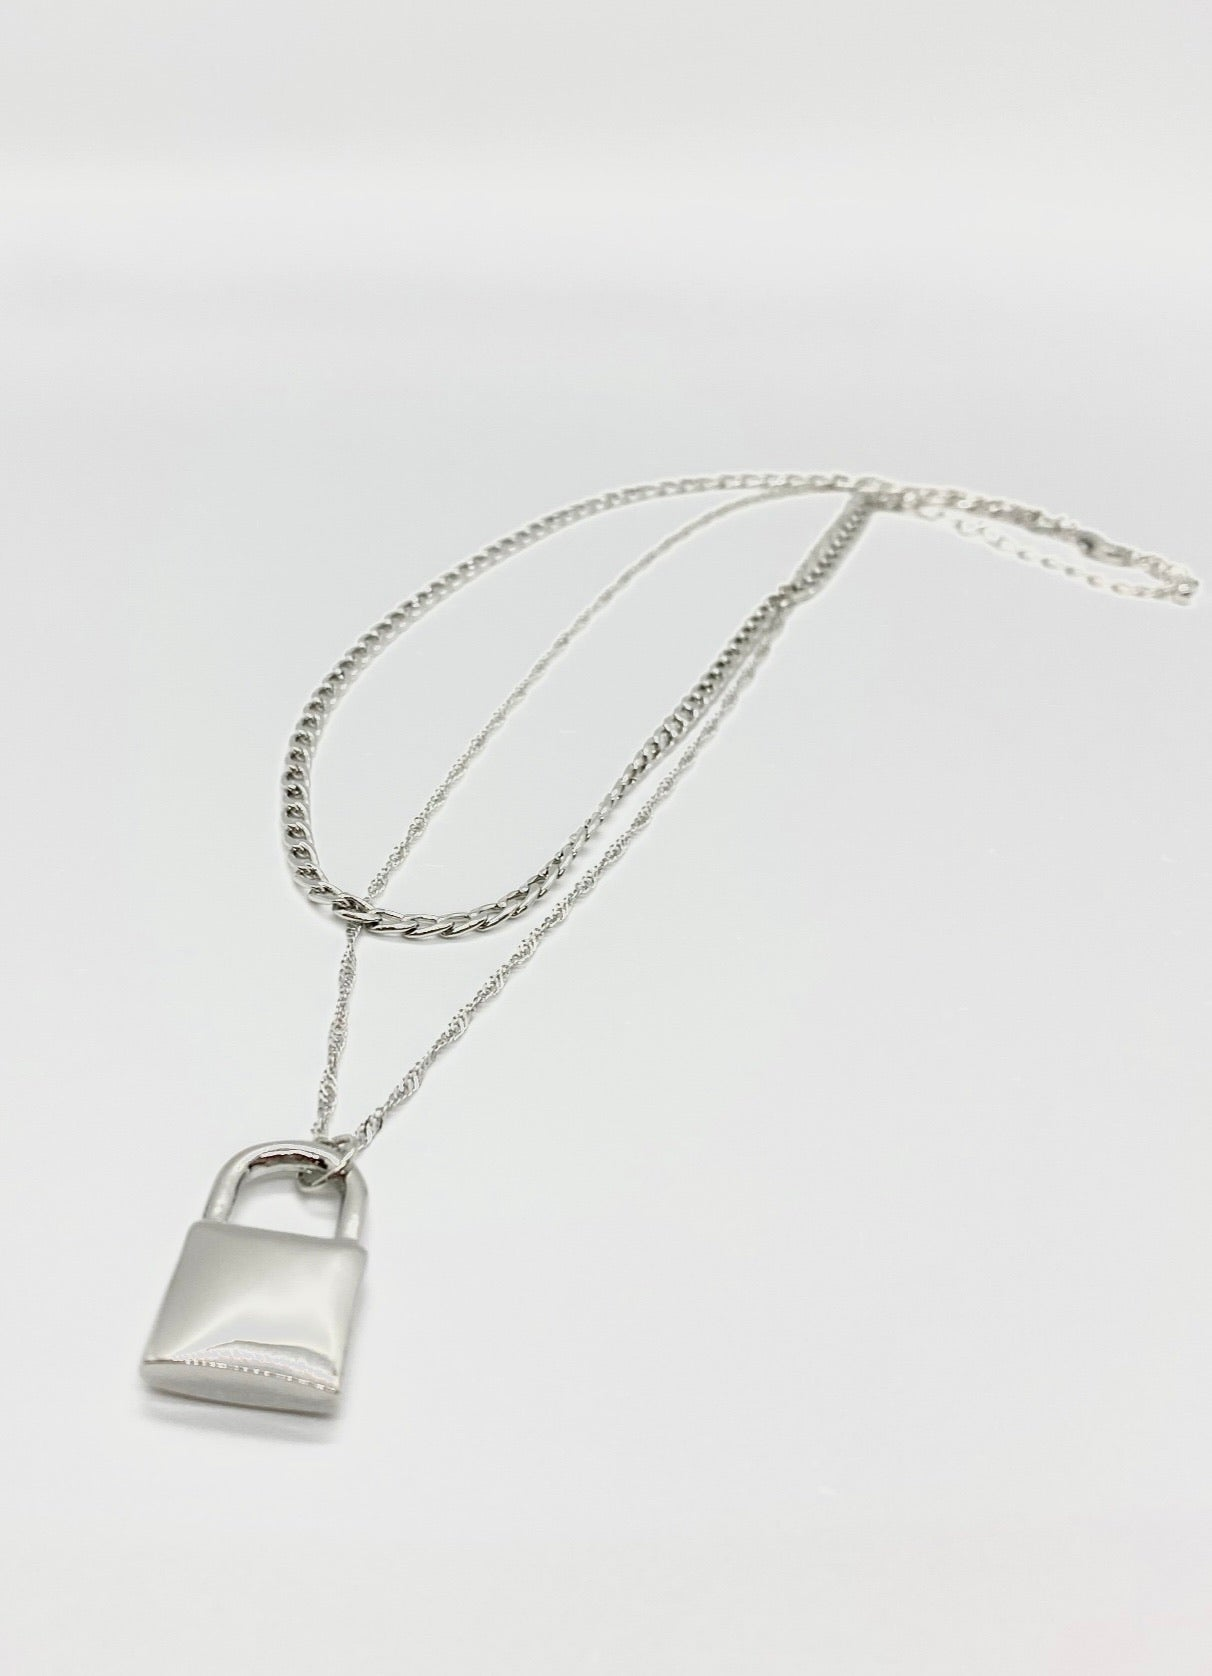 Lock It Up Necklace